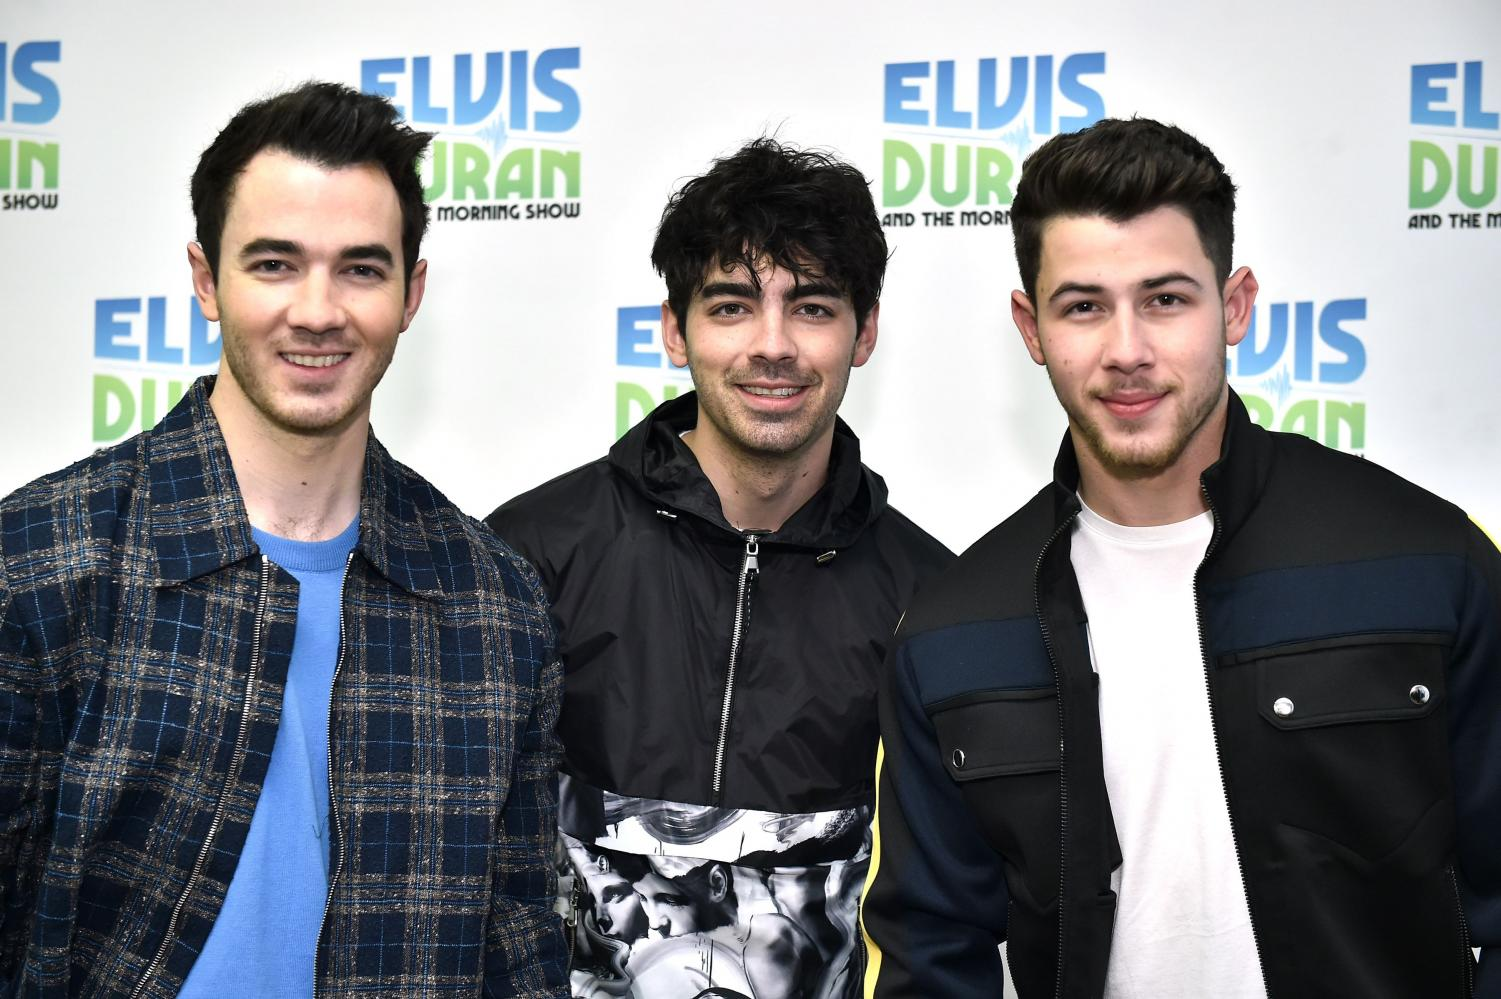 The Jonas Brothers' have reunited after a six year hiatus.